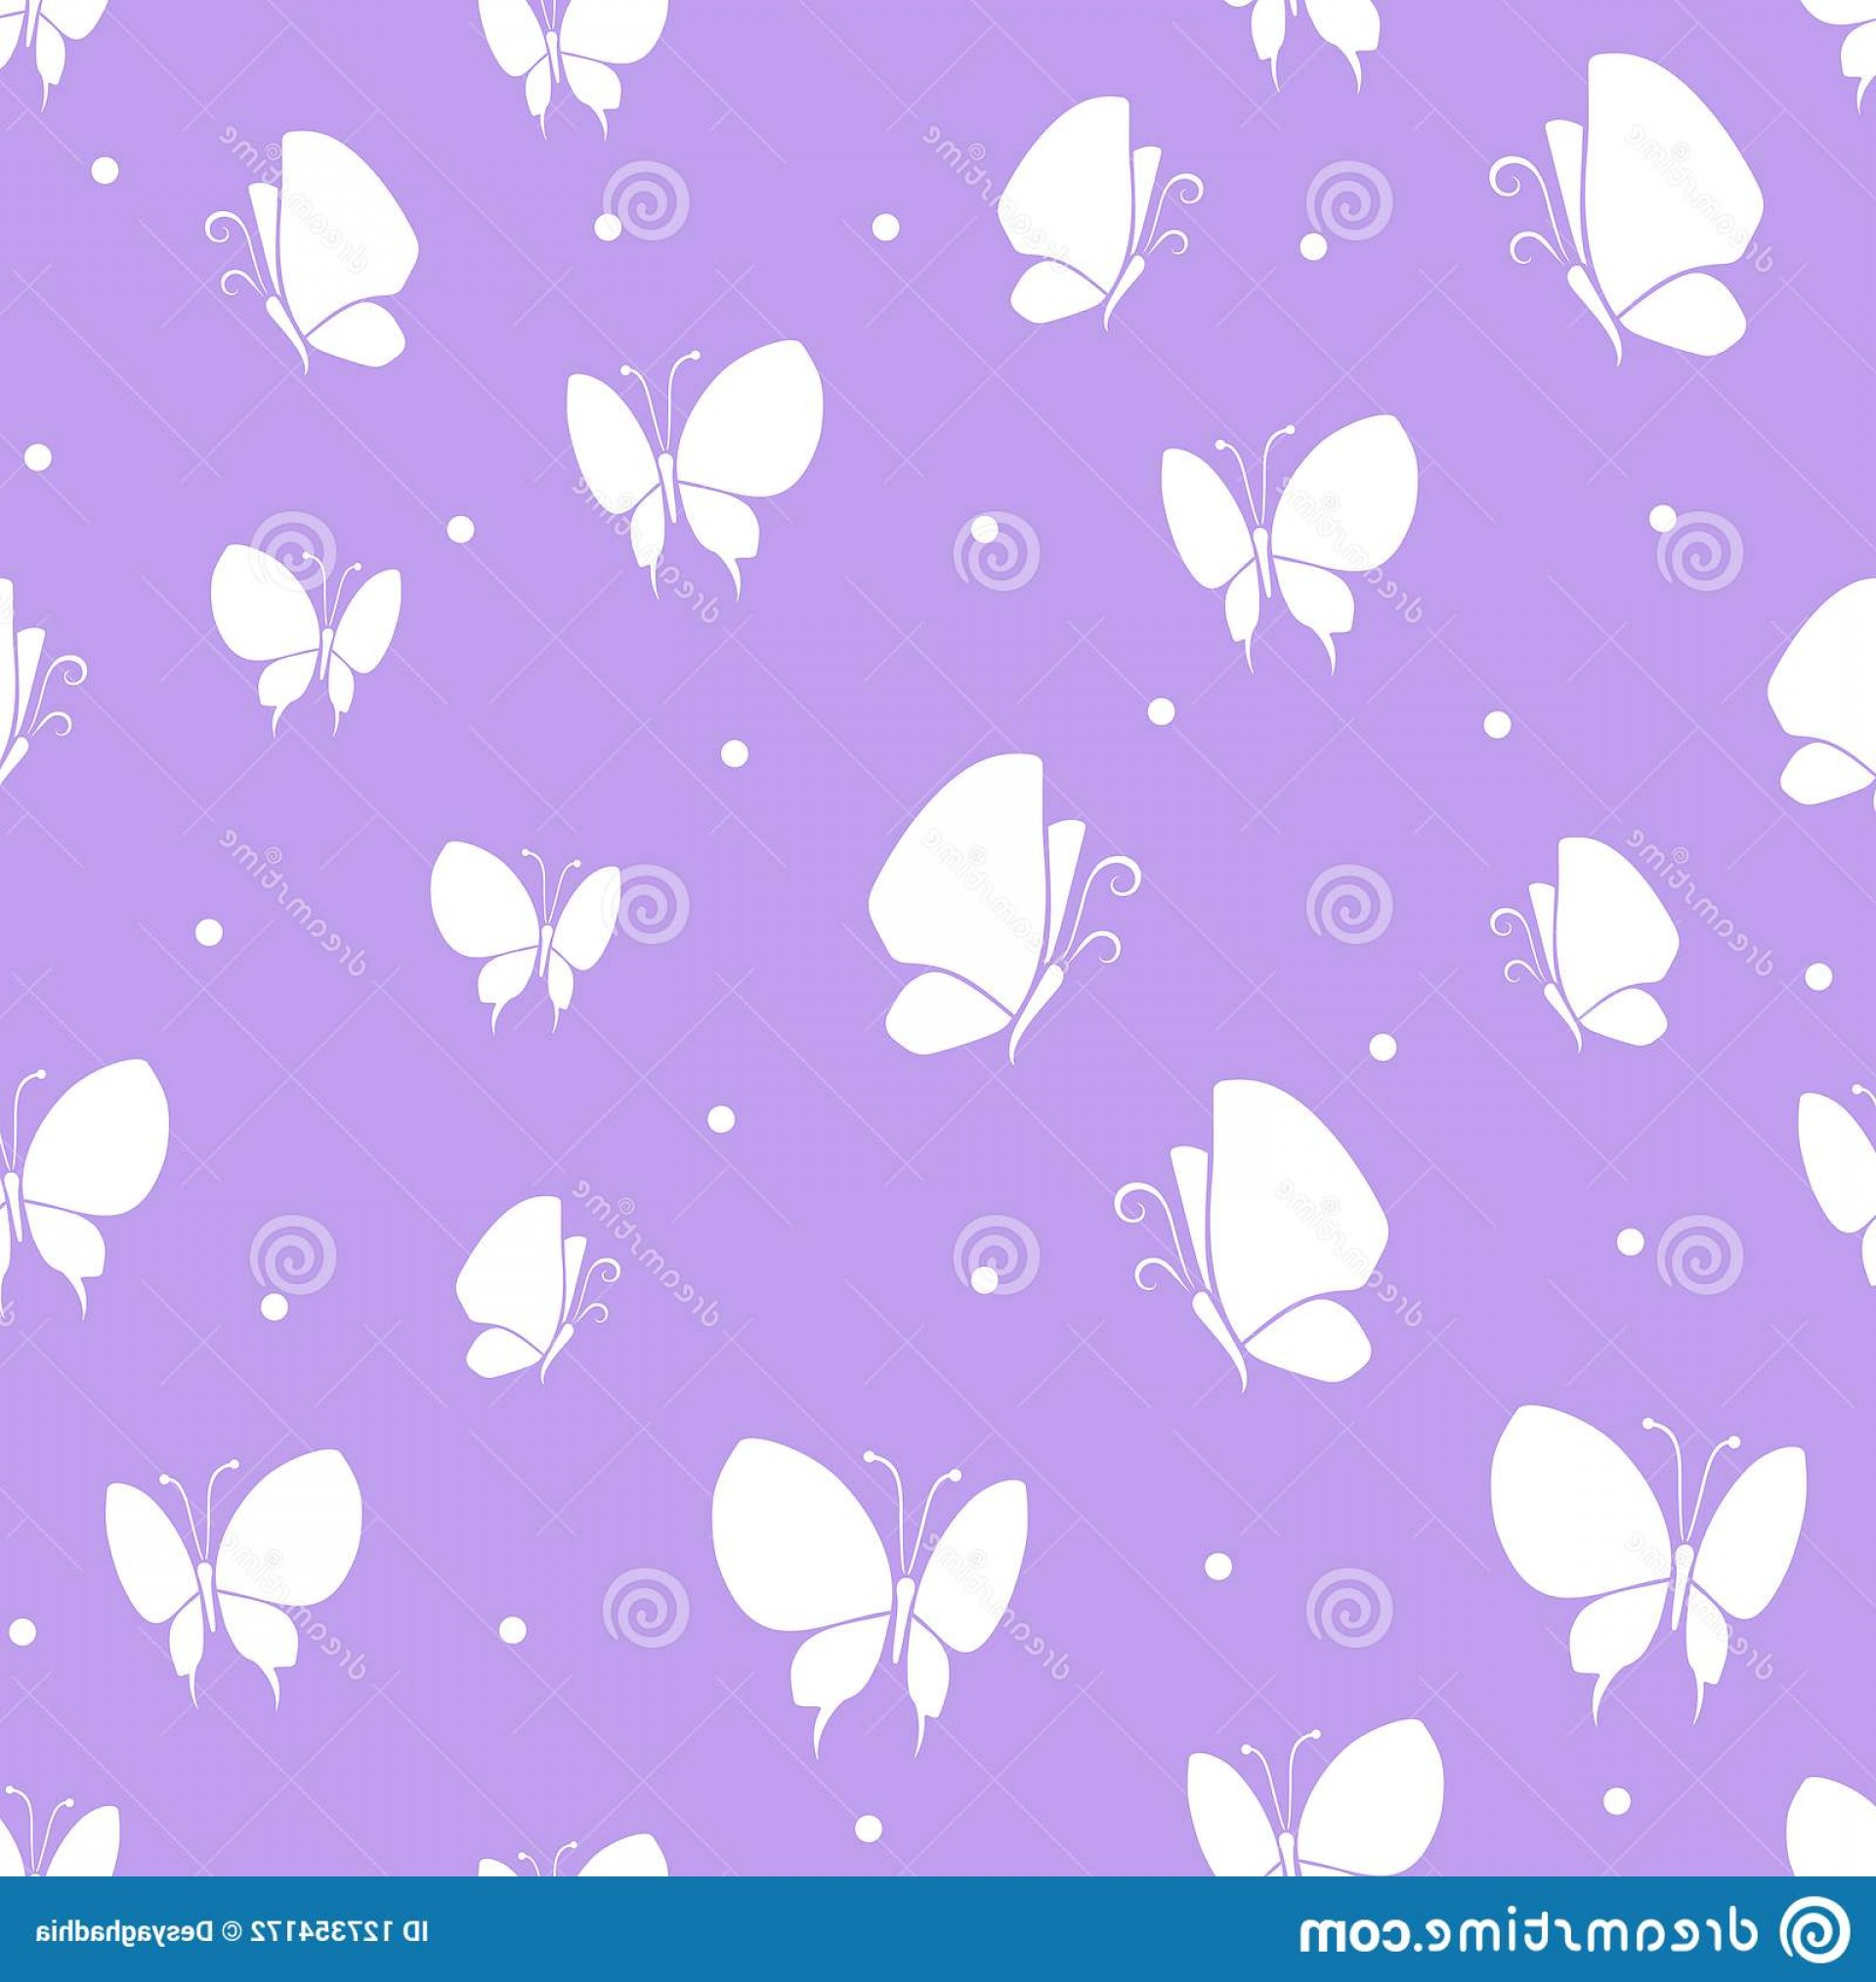 Purple Butterfly Wallpaper Vector: Butterflies Icon Set Isolated Vector Illustration Seamless Pattern Purple Background Wallpaper Fabric Wrapping Paper Image